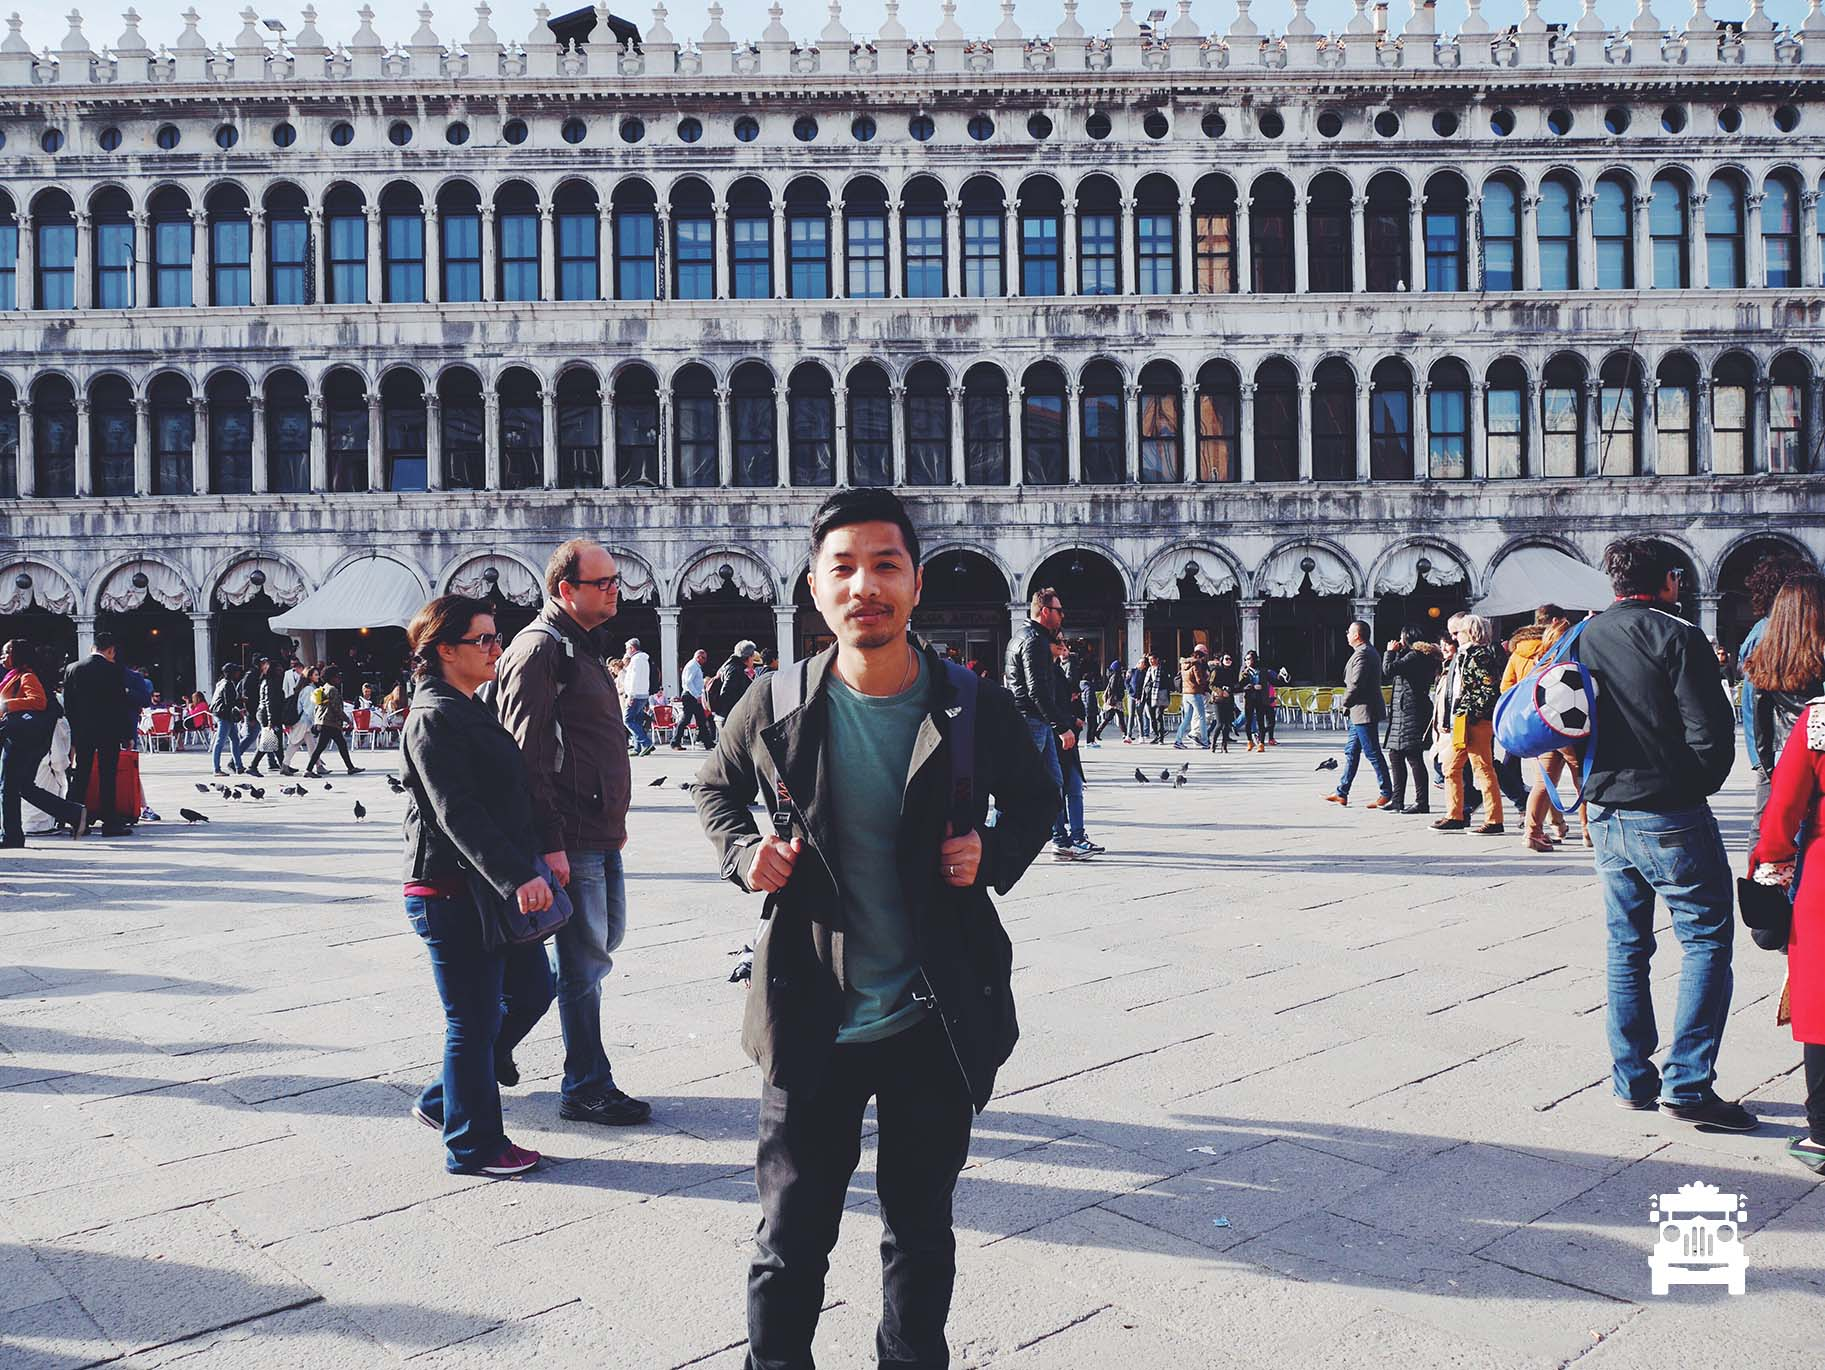 At St Mark's Square